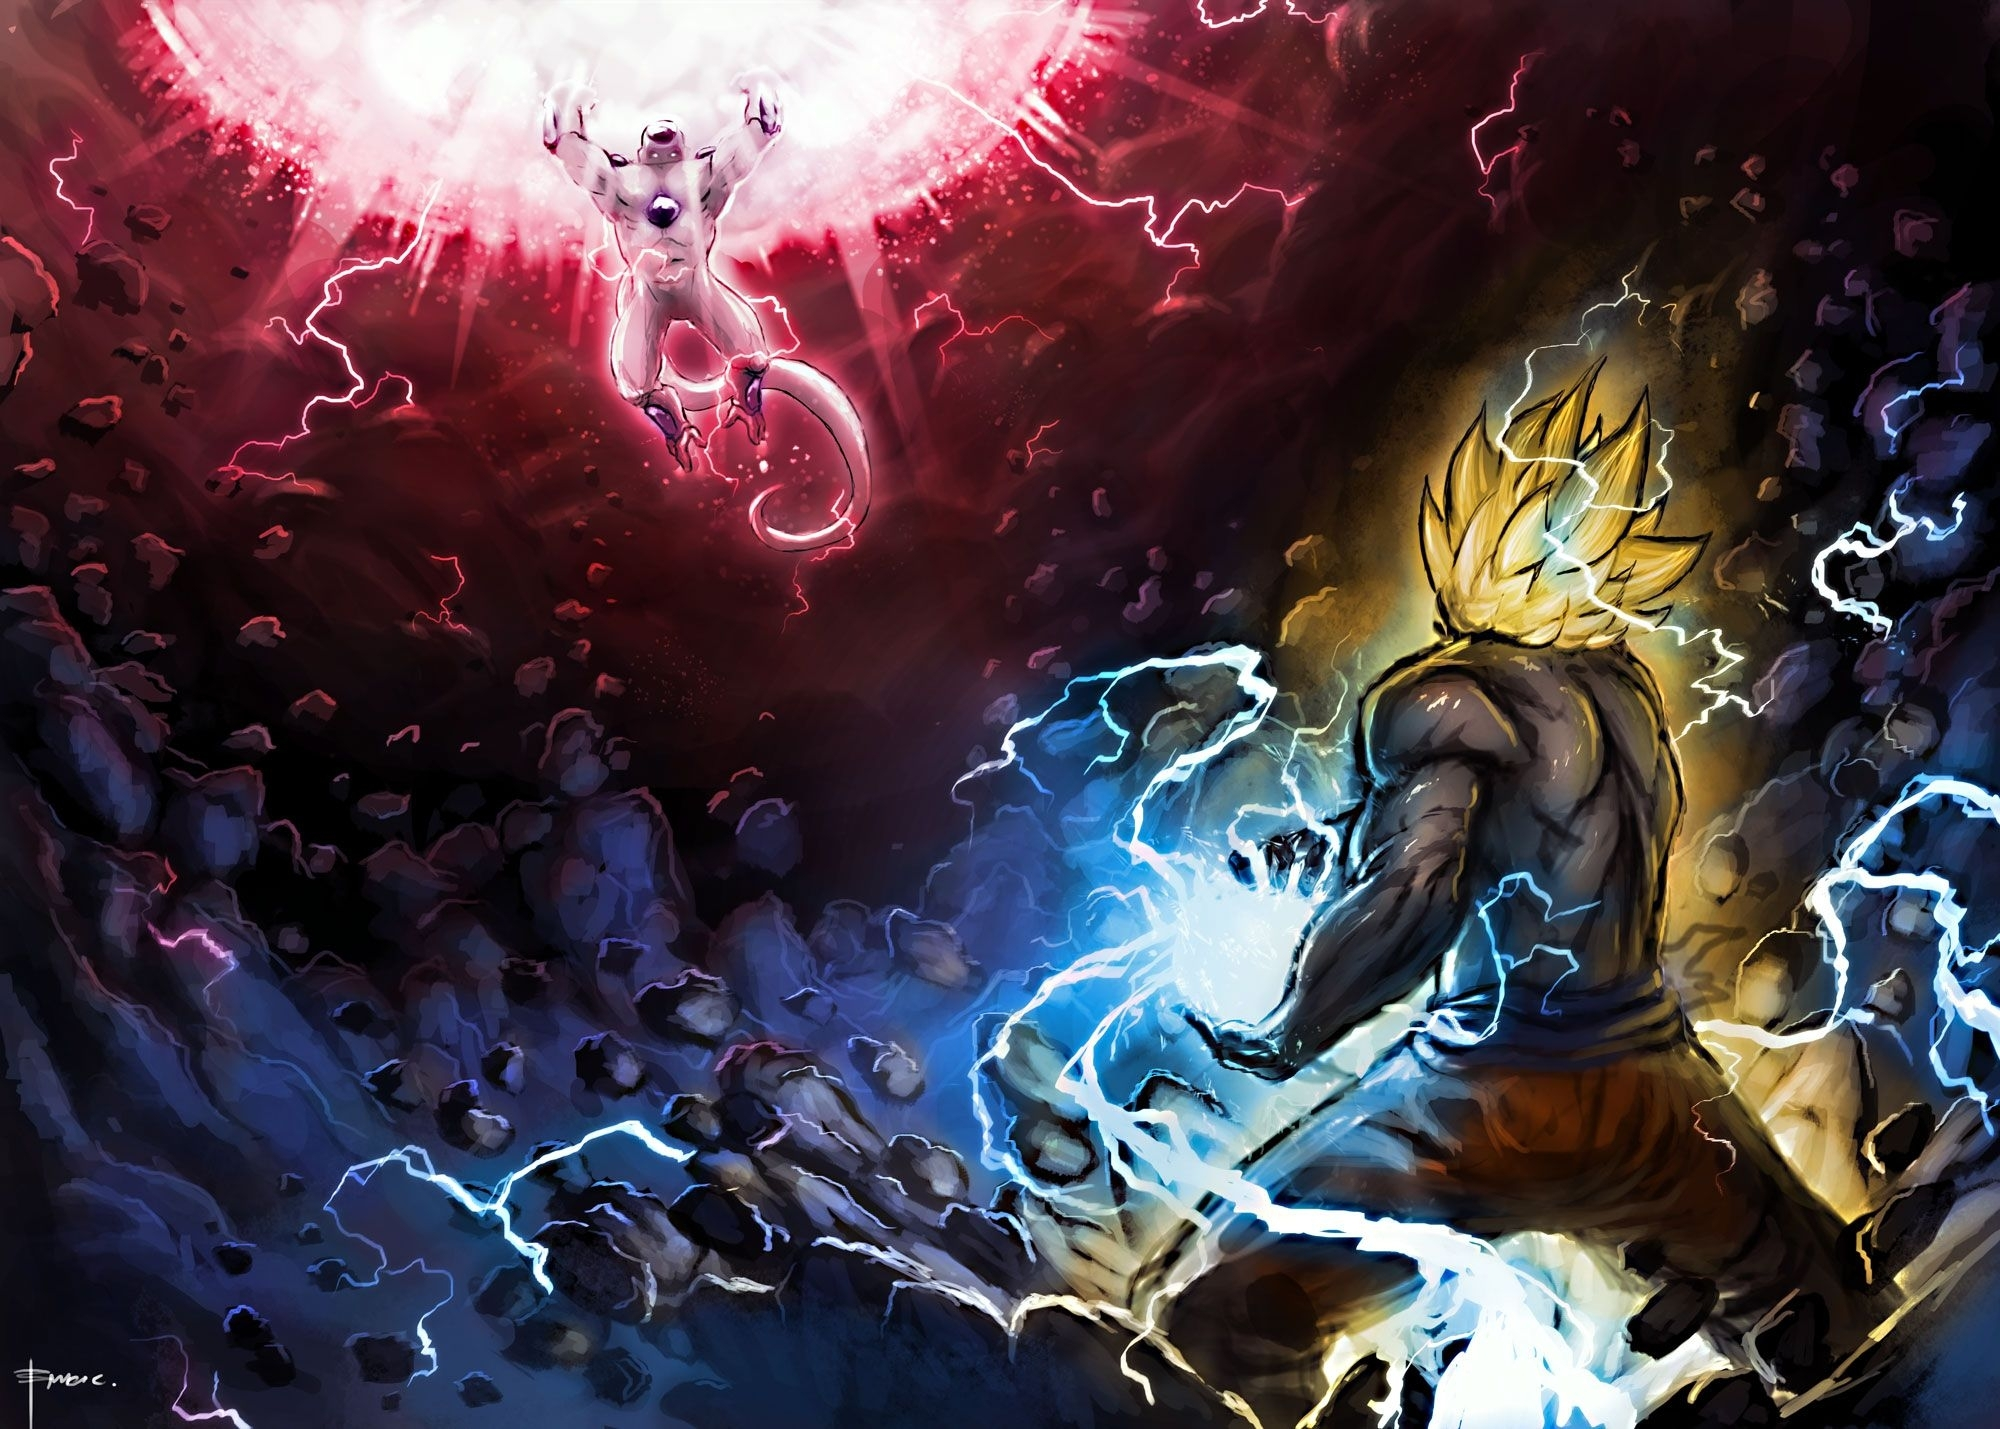 aqansari : page 16 : dragon ball z wallpaper all characters